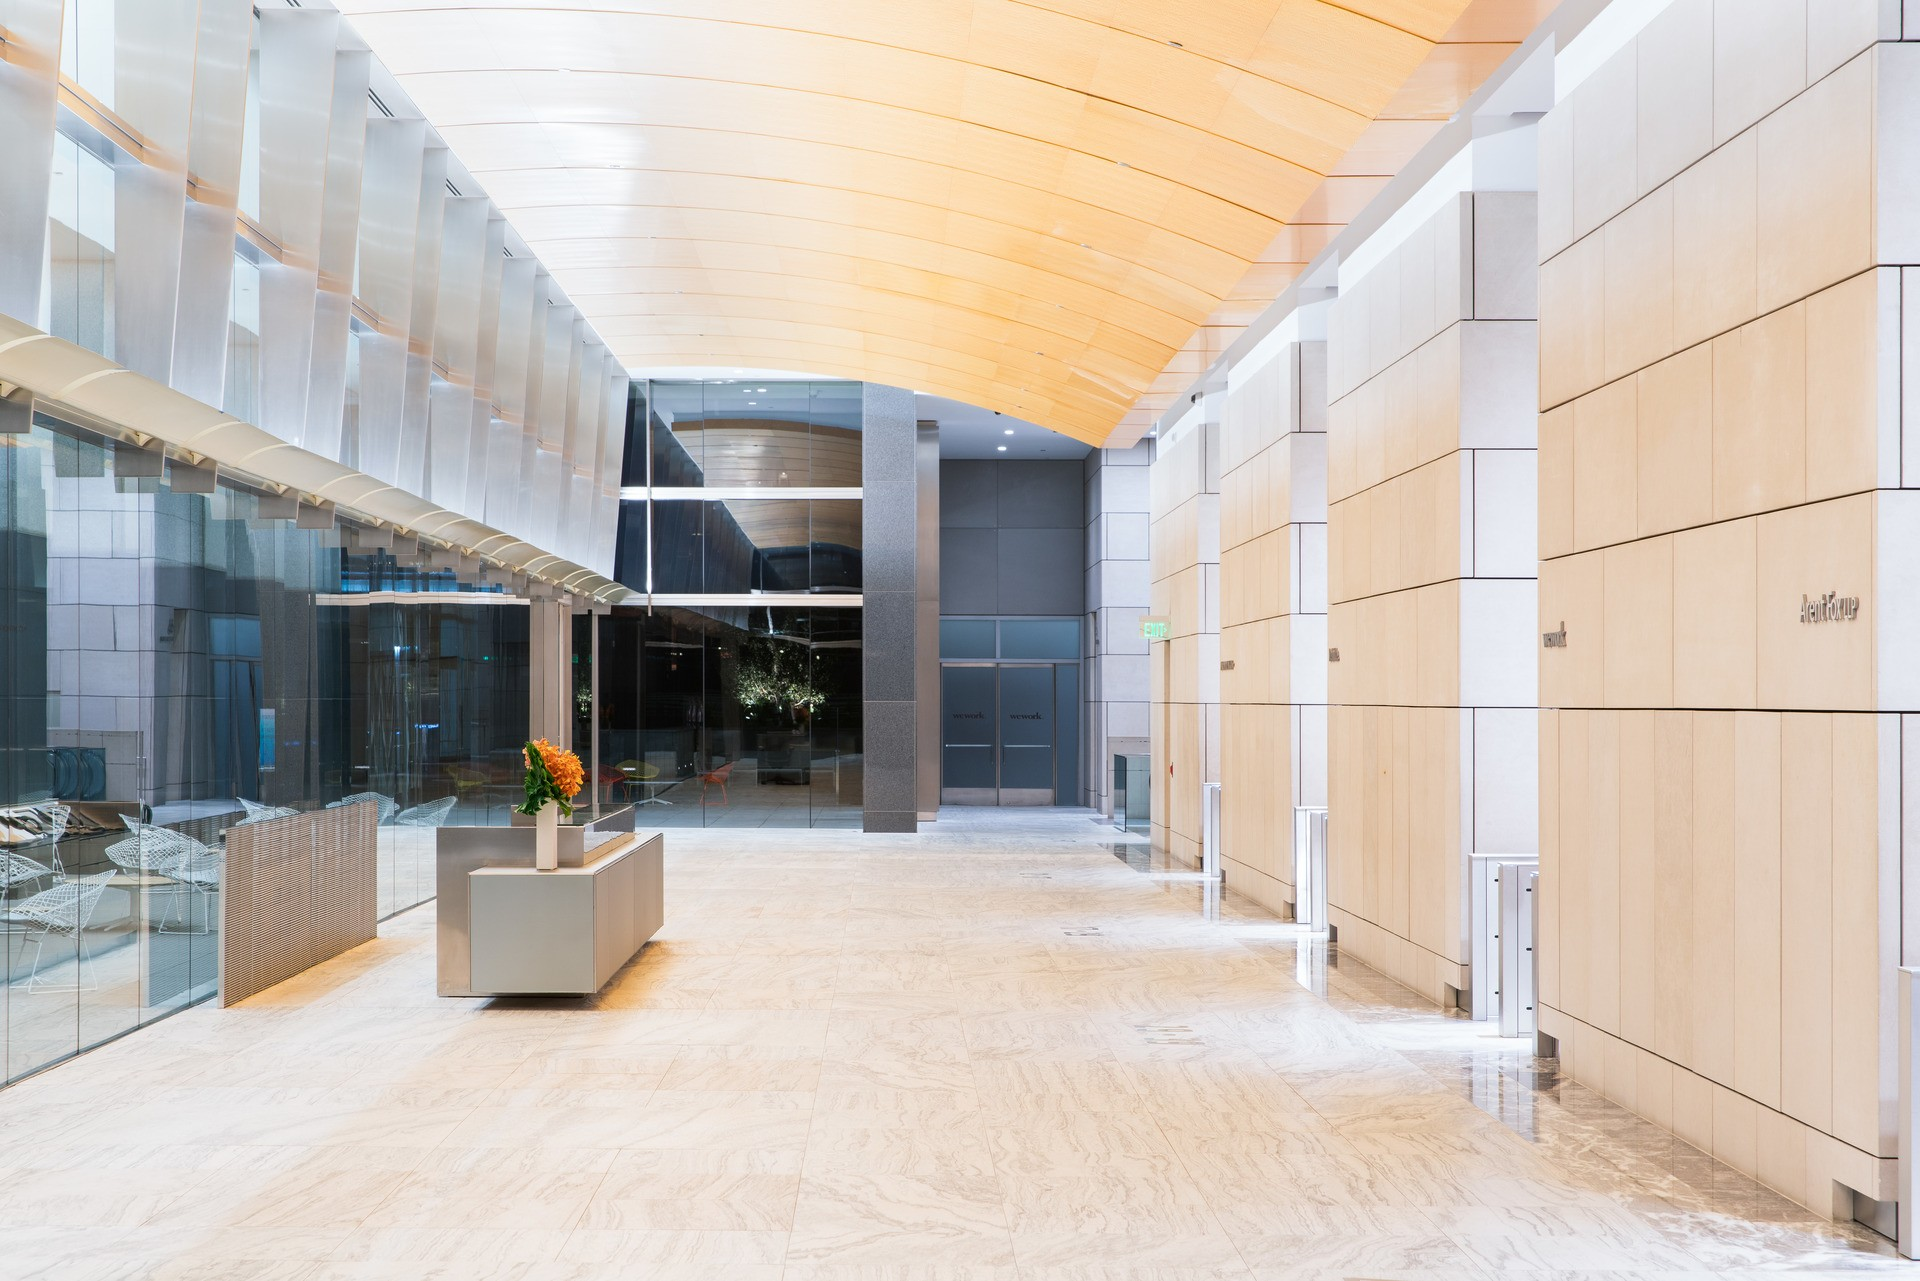 Lobby of a building with natural wood floors. There is a receptionist desk that has orange flowers on it.